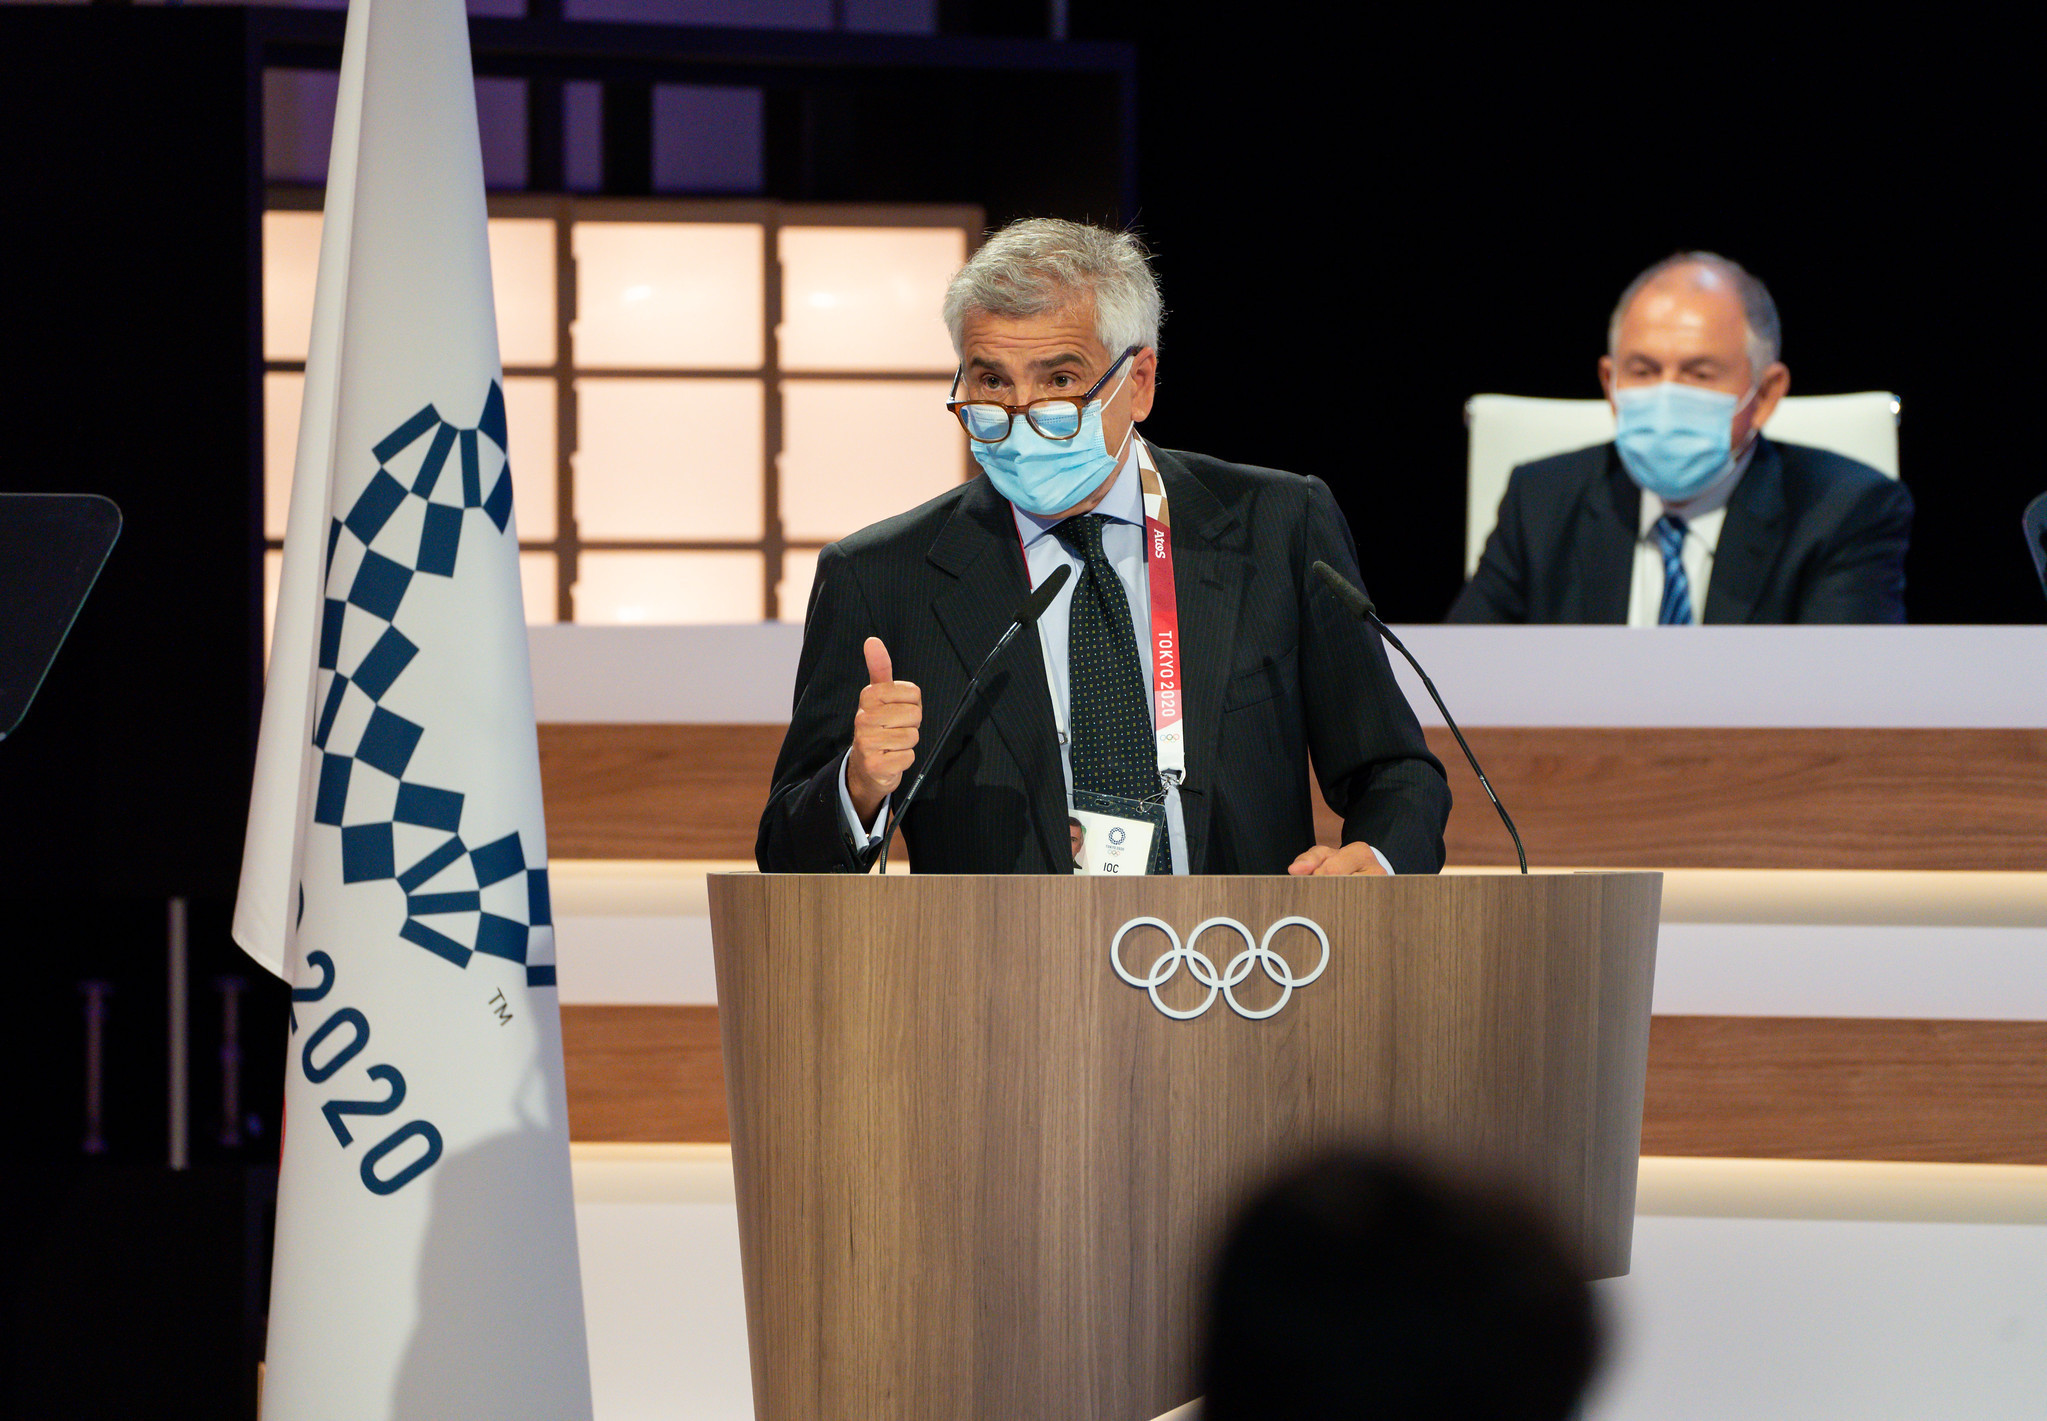 Samaranch says successful Winter Olympics needed at Beijing 2022 and wants international community present